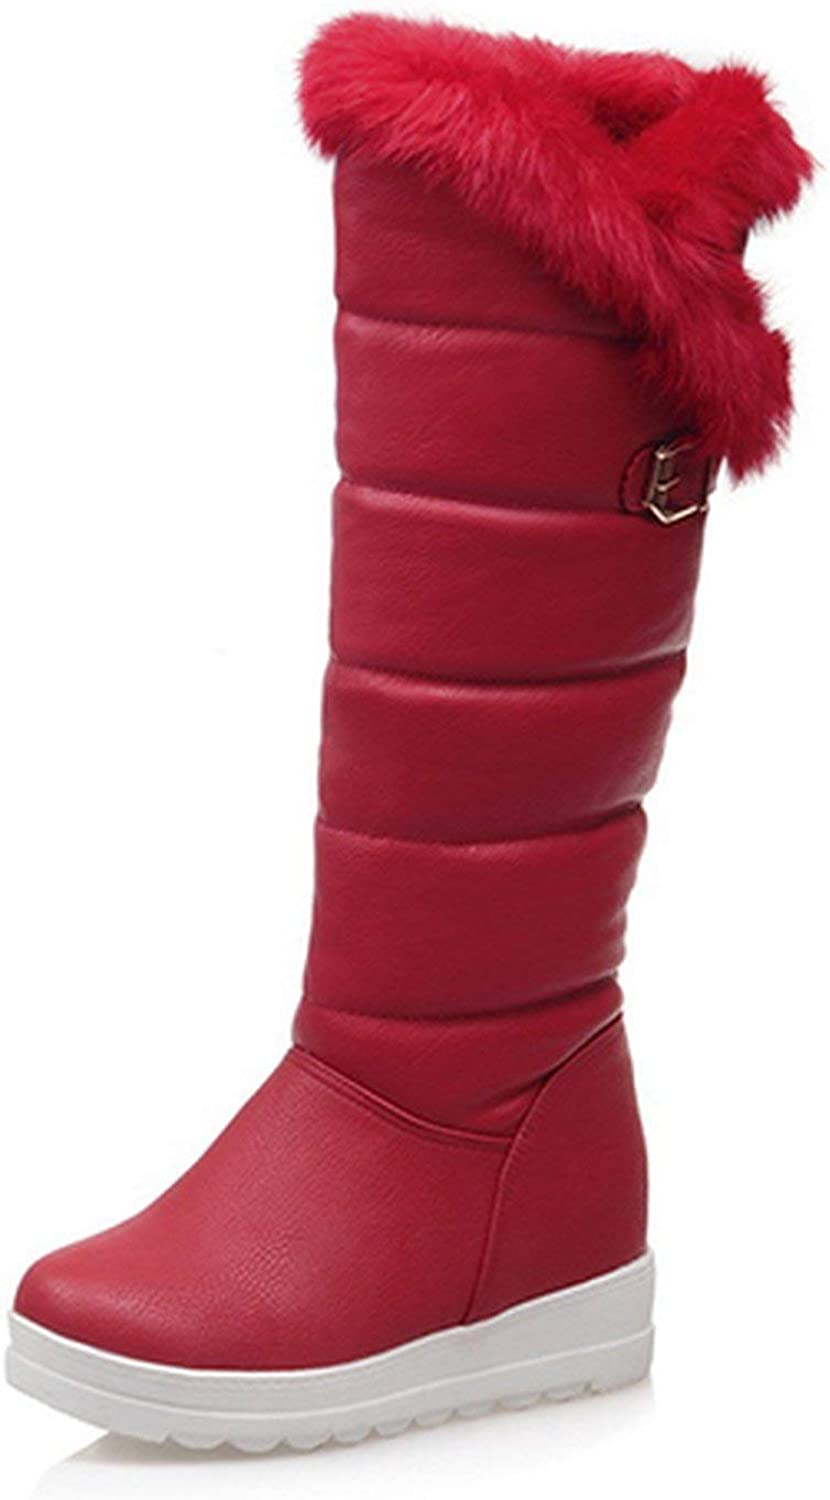 Summer-lavender Knee High Boots Red Winter shoes Warm Women Snow Boots Height Increasing Buckle Wedges Boots Plush